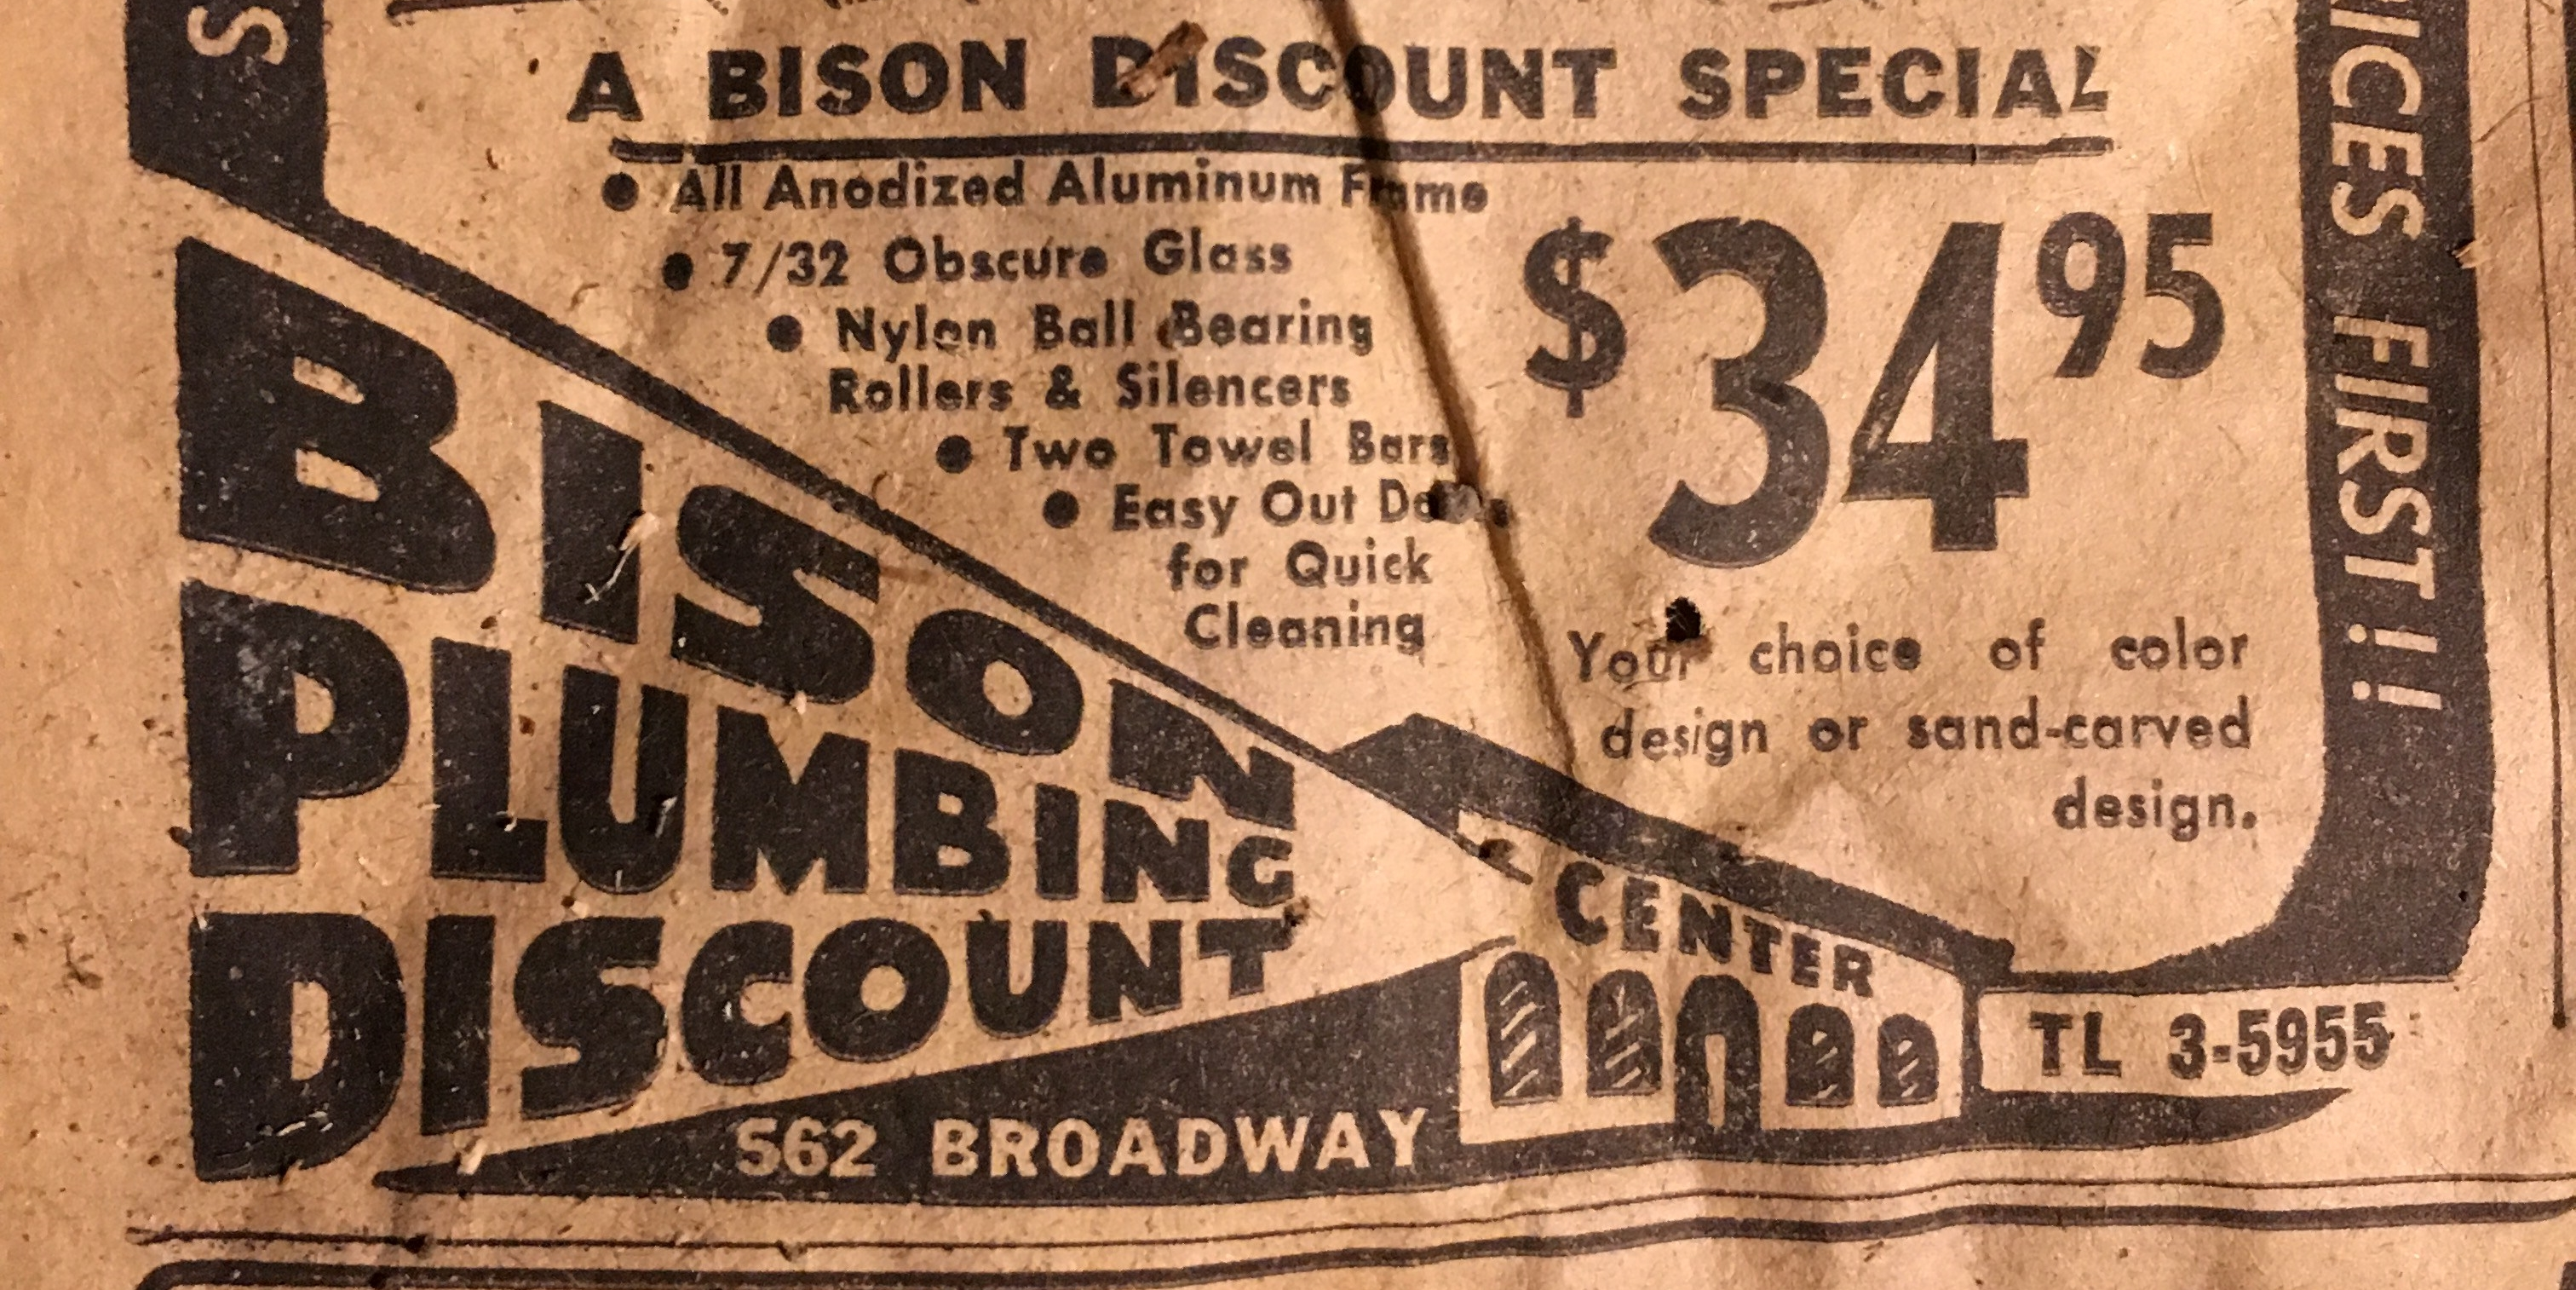 Bison Plumbing DIscount Center